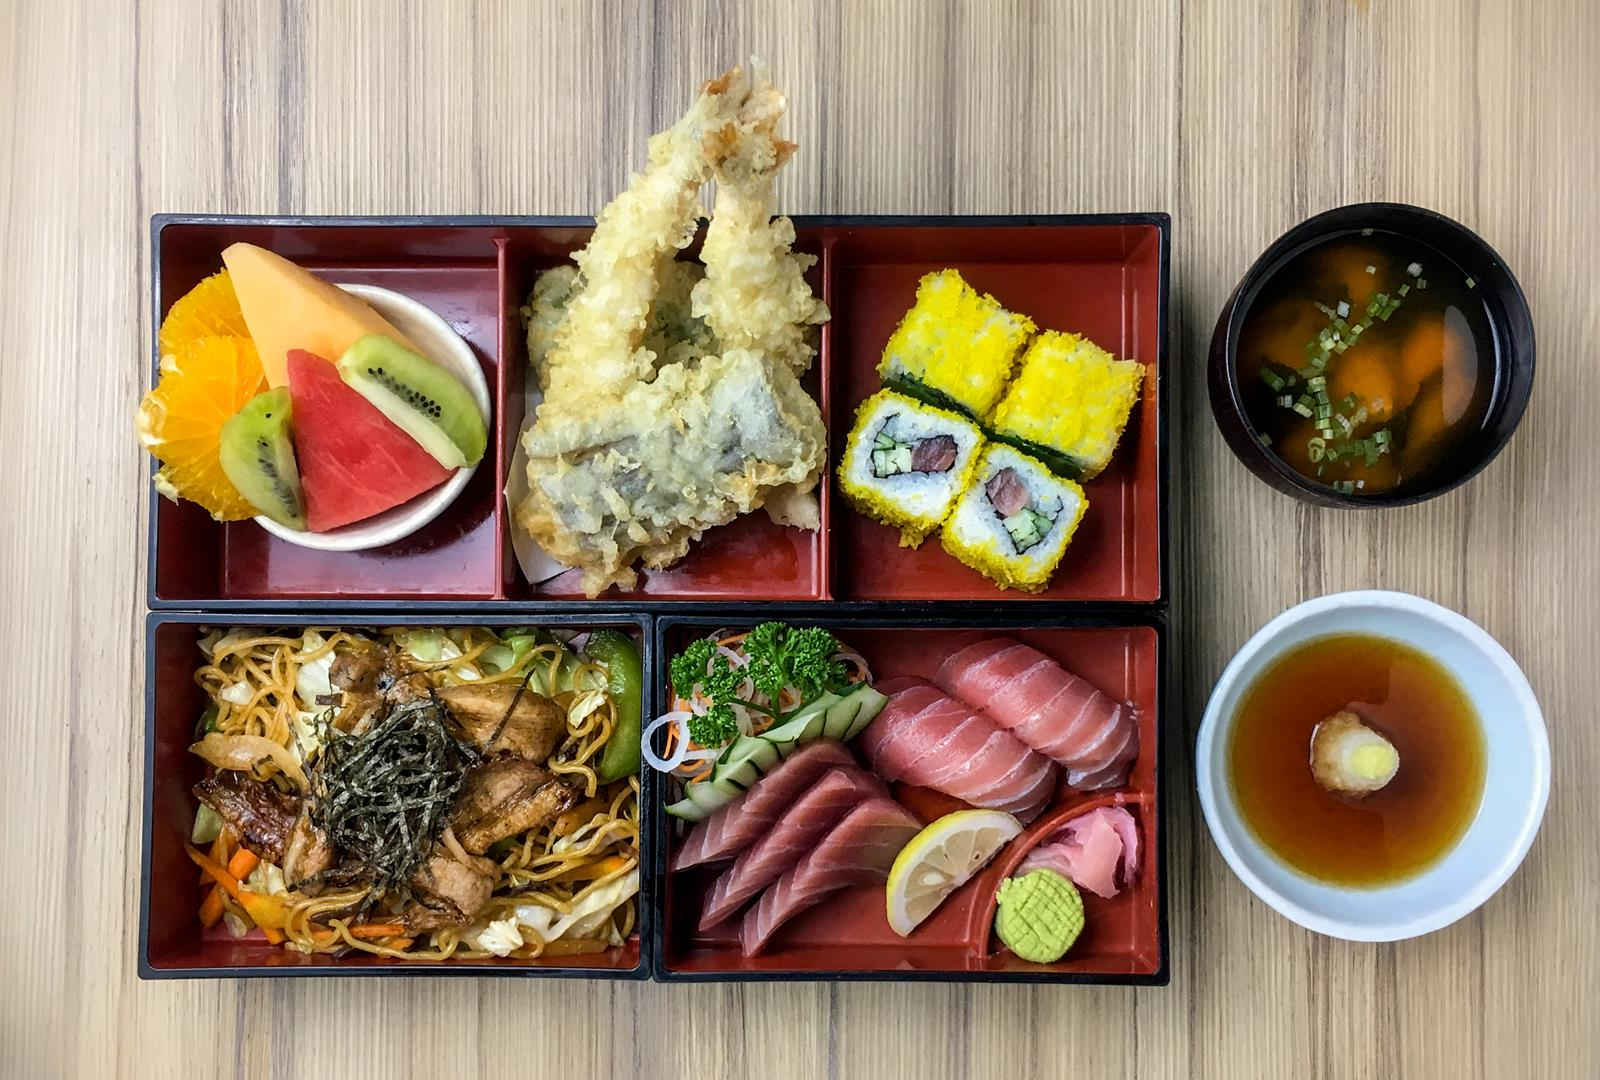 The Kitsho Special bento box is for lovers of shrimp tempura and yakisoba.